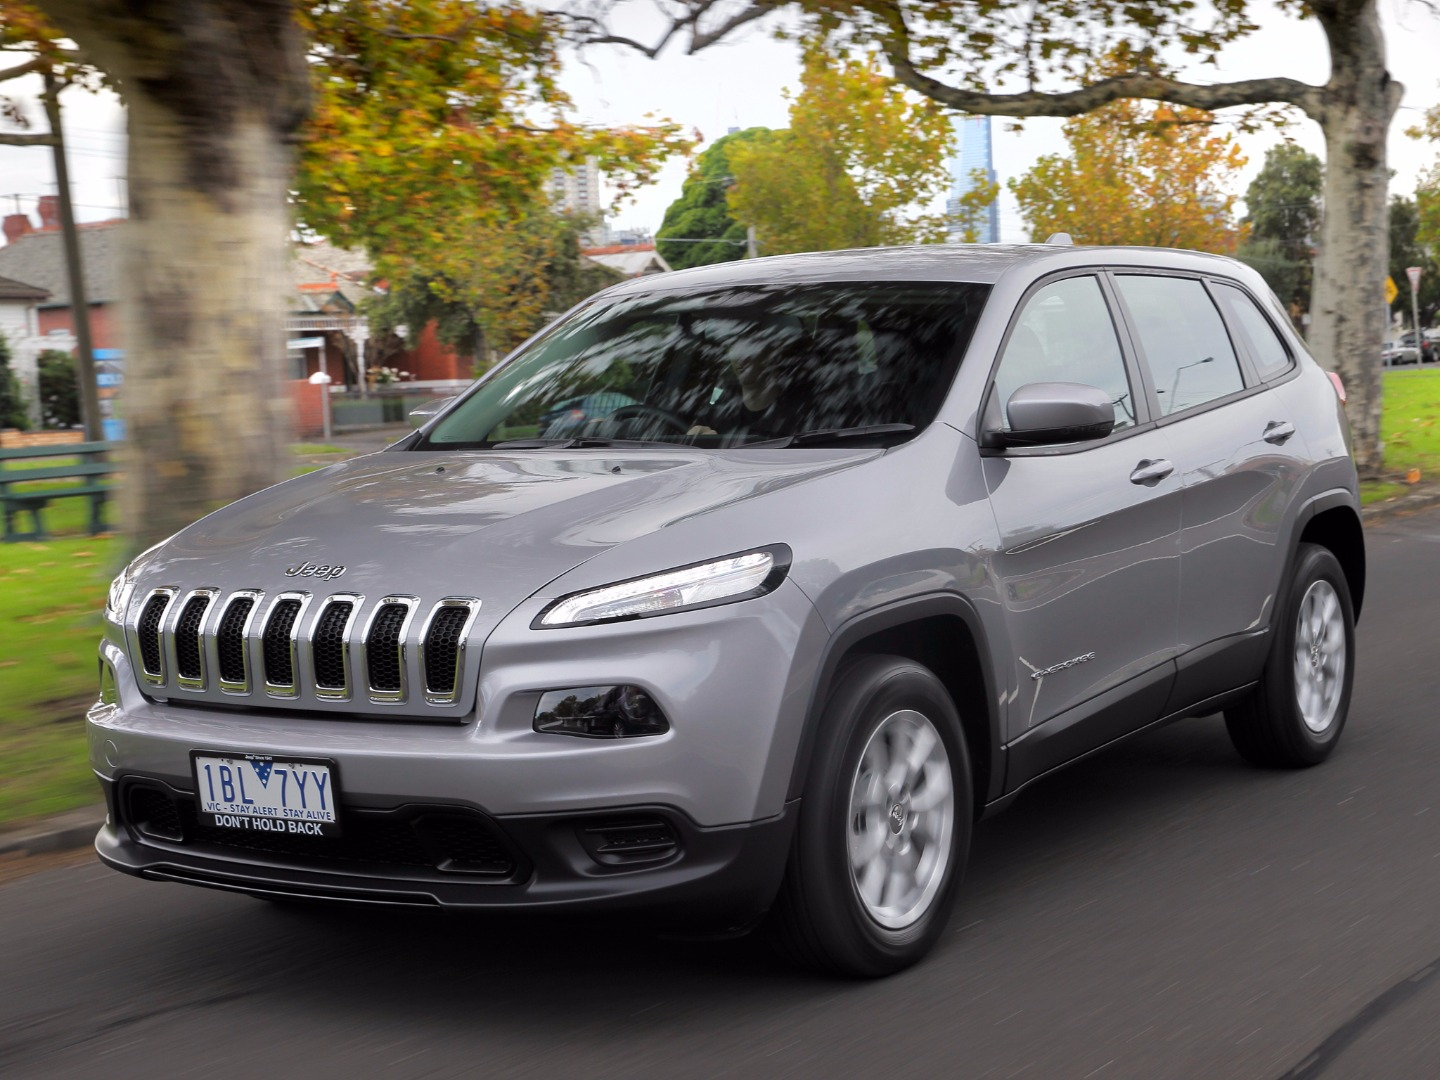 news fca australia recalls jeeps fault may lead to power loss. Black Bedroom Furniture Sets. Home Design Ideas